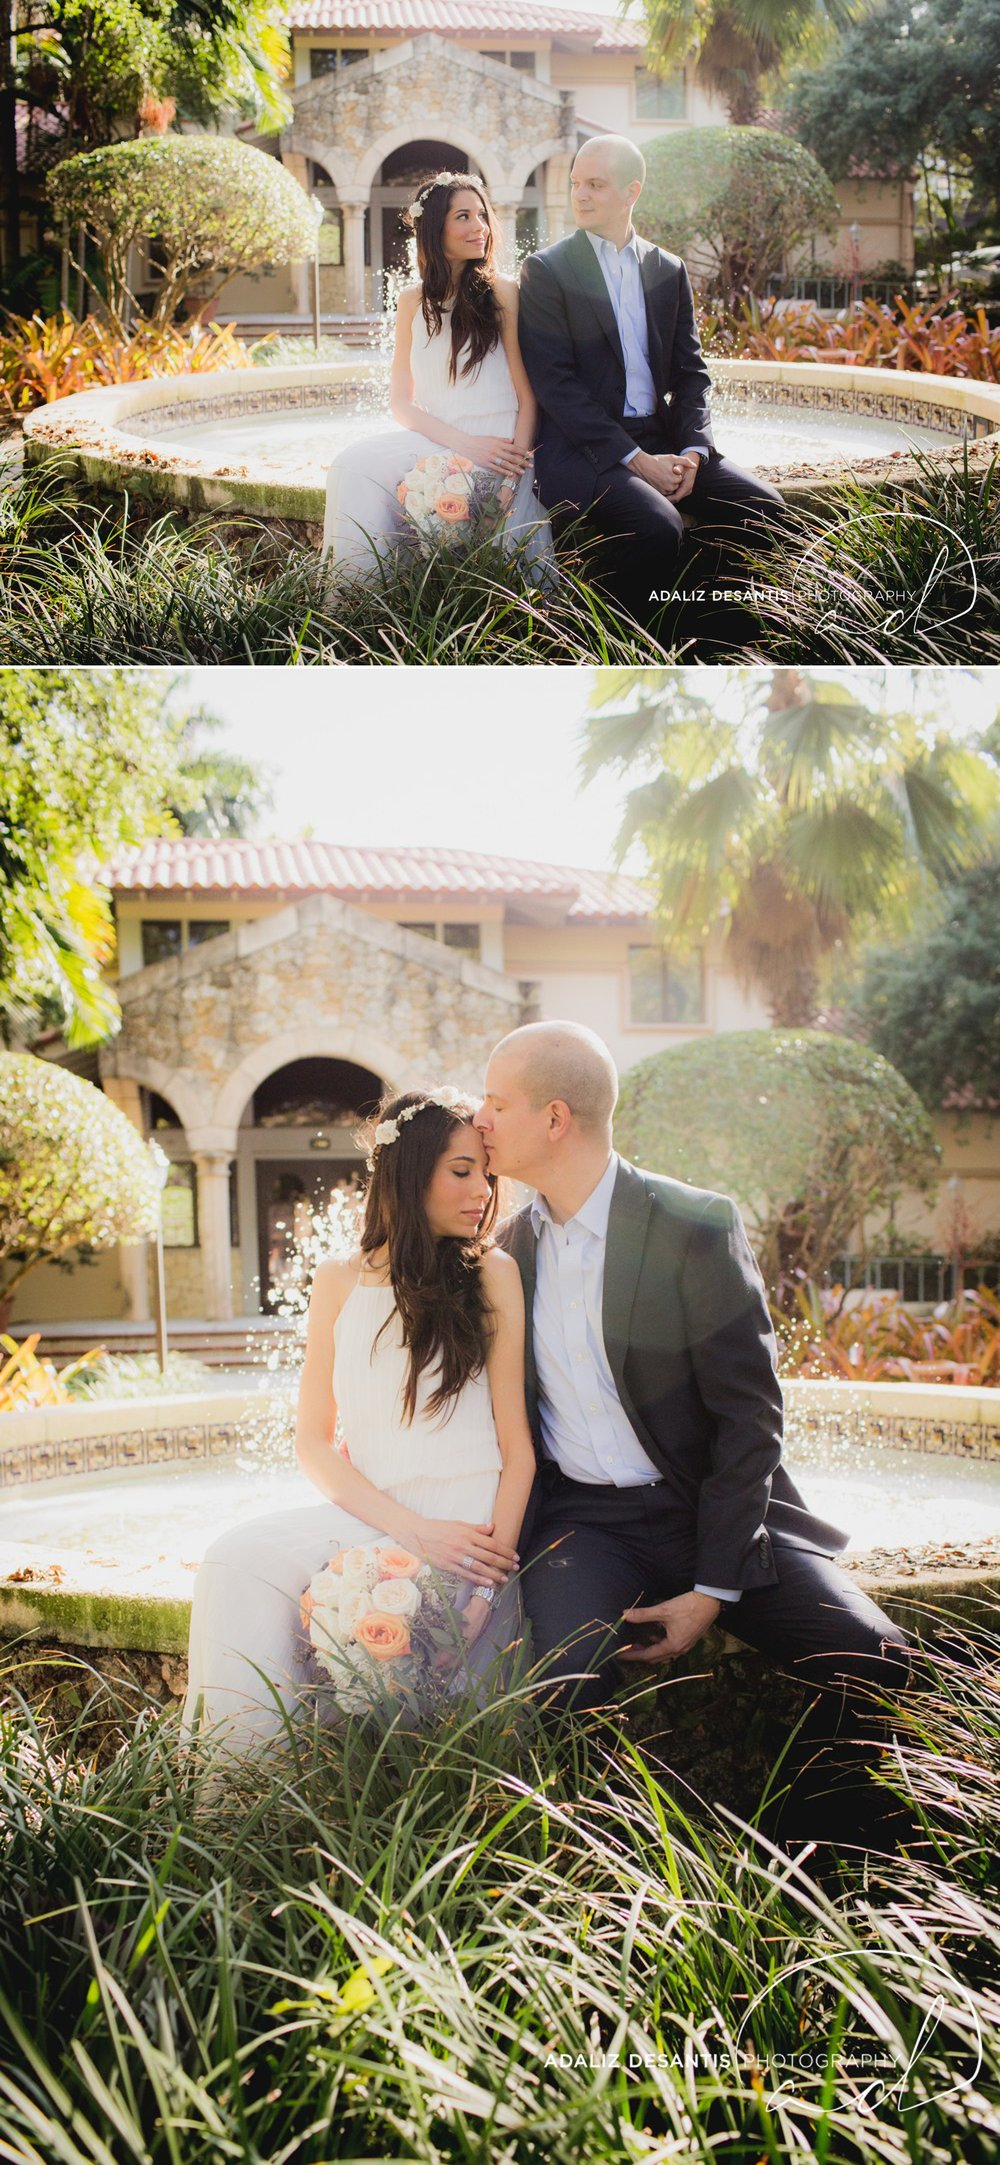 plymouth-congregational-church-coconut-grove-miami-elopement-matrimonio-civil-coral-gables 18.jpg